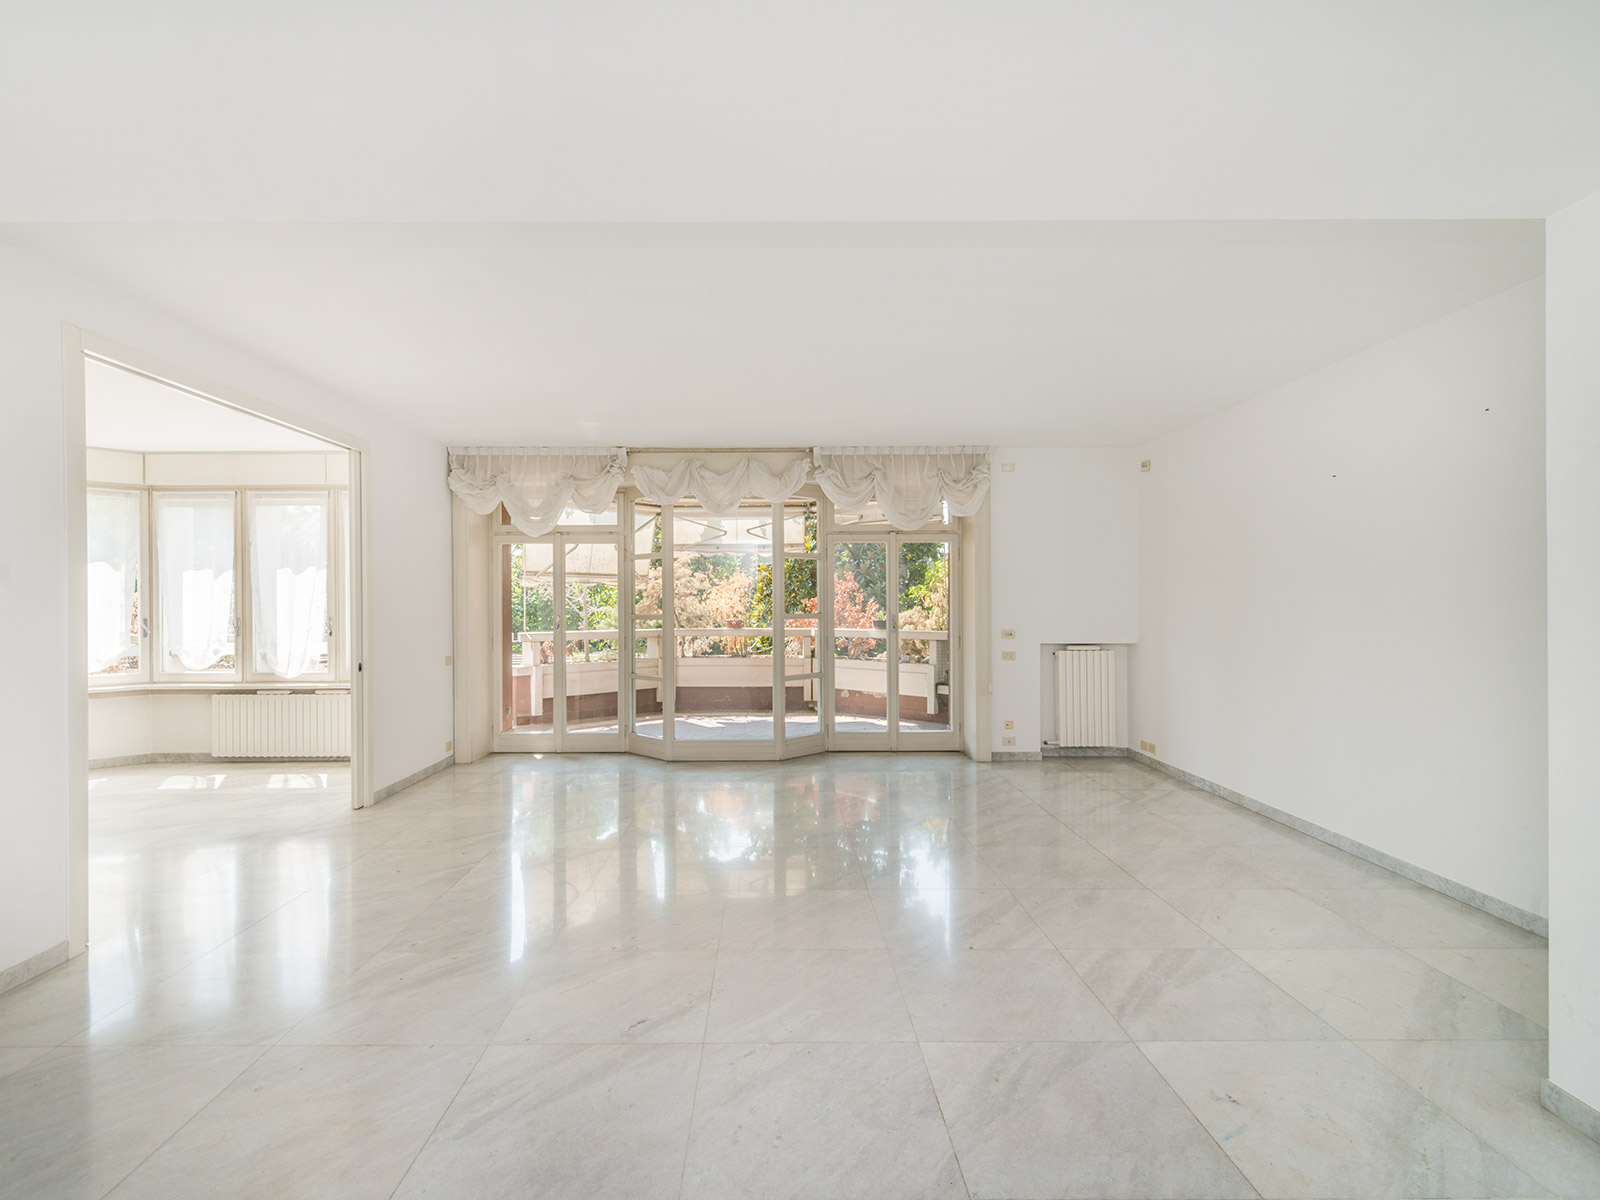 Additional photo for property listing at Discreet home with terraces in San Siro Via Ippodromo Milano, Milan 20121 Italy